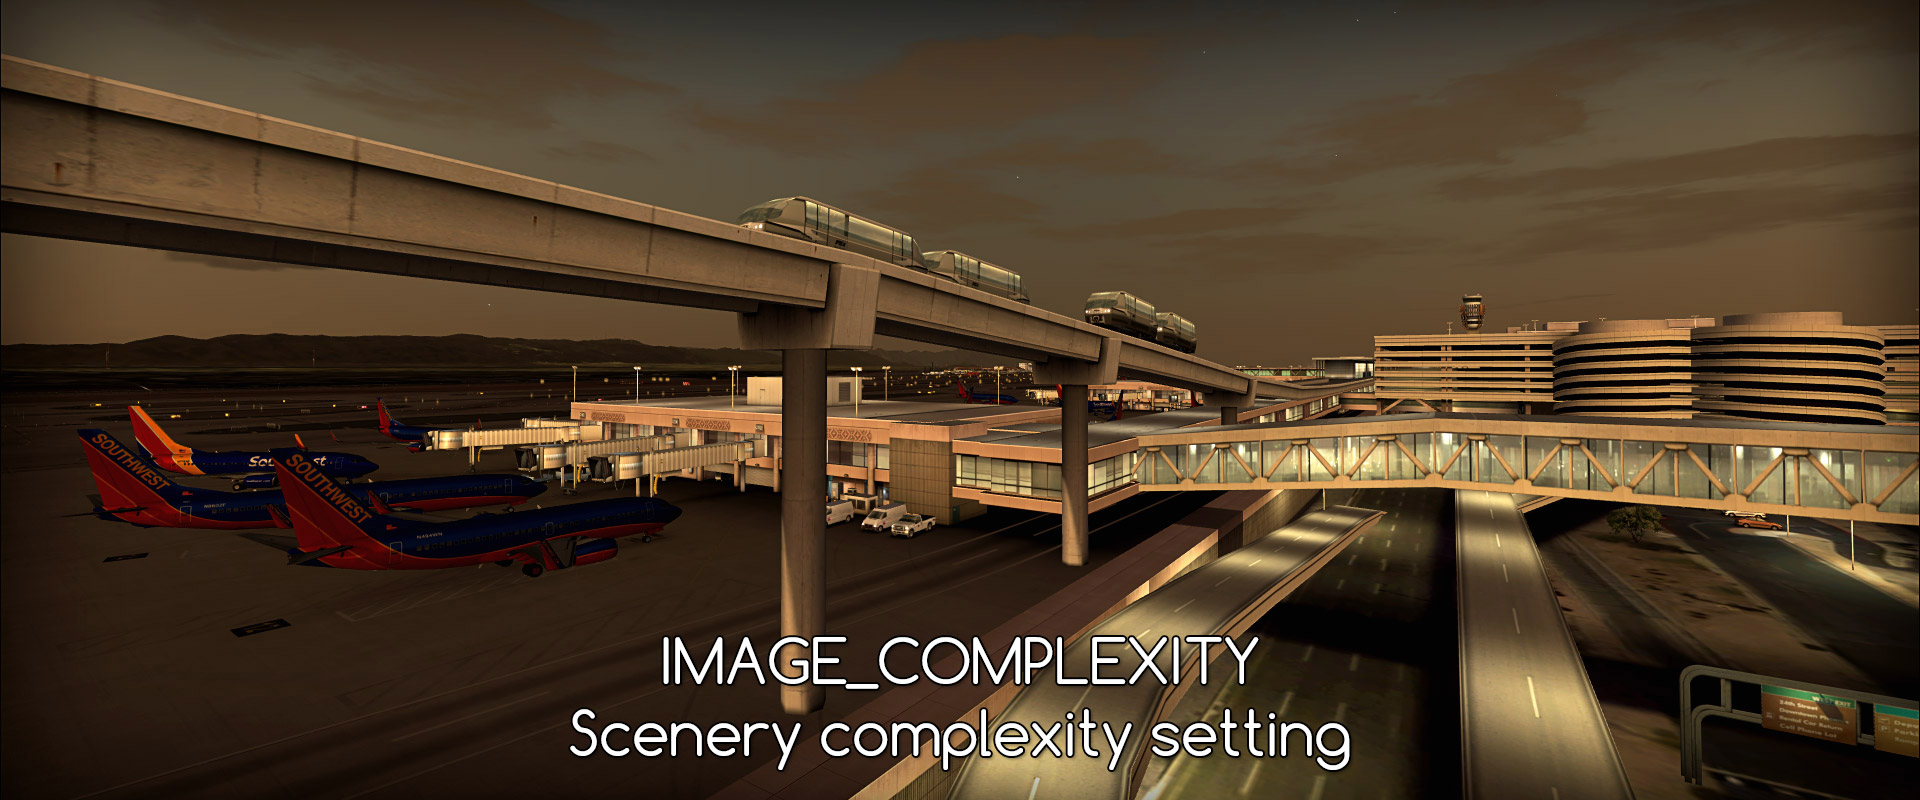 IMAGE_COMPLEXITY - scenery complexity setting